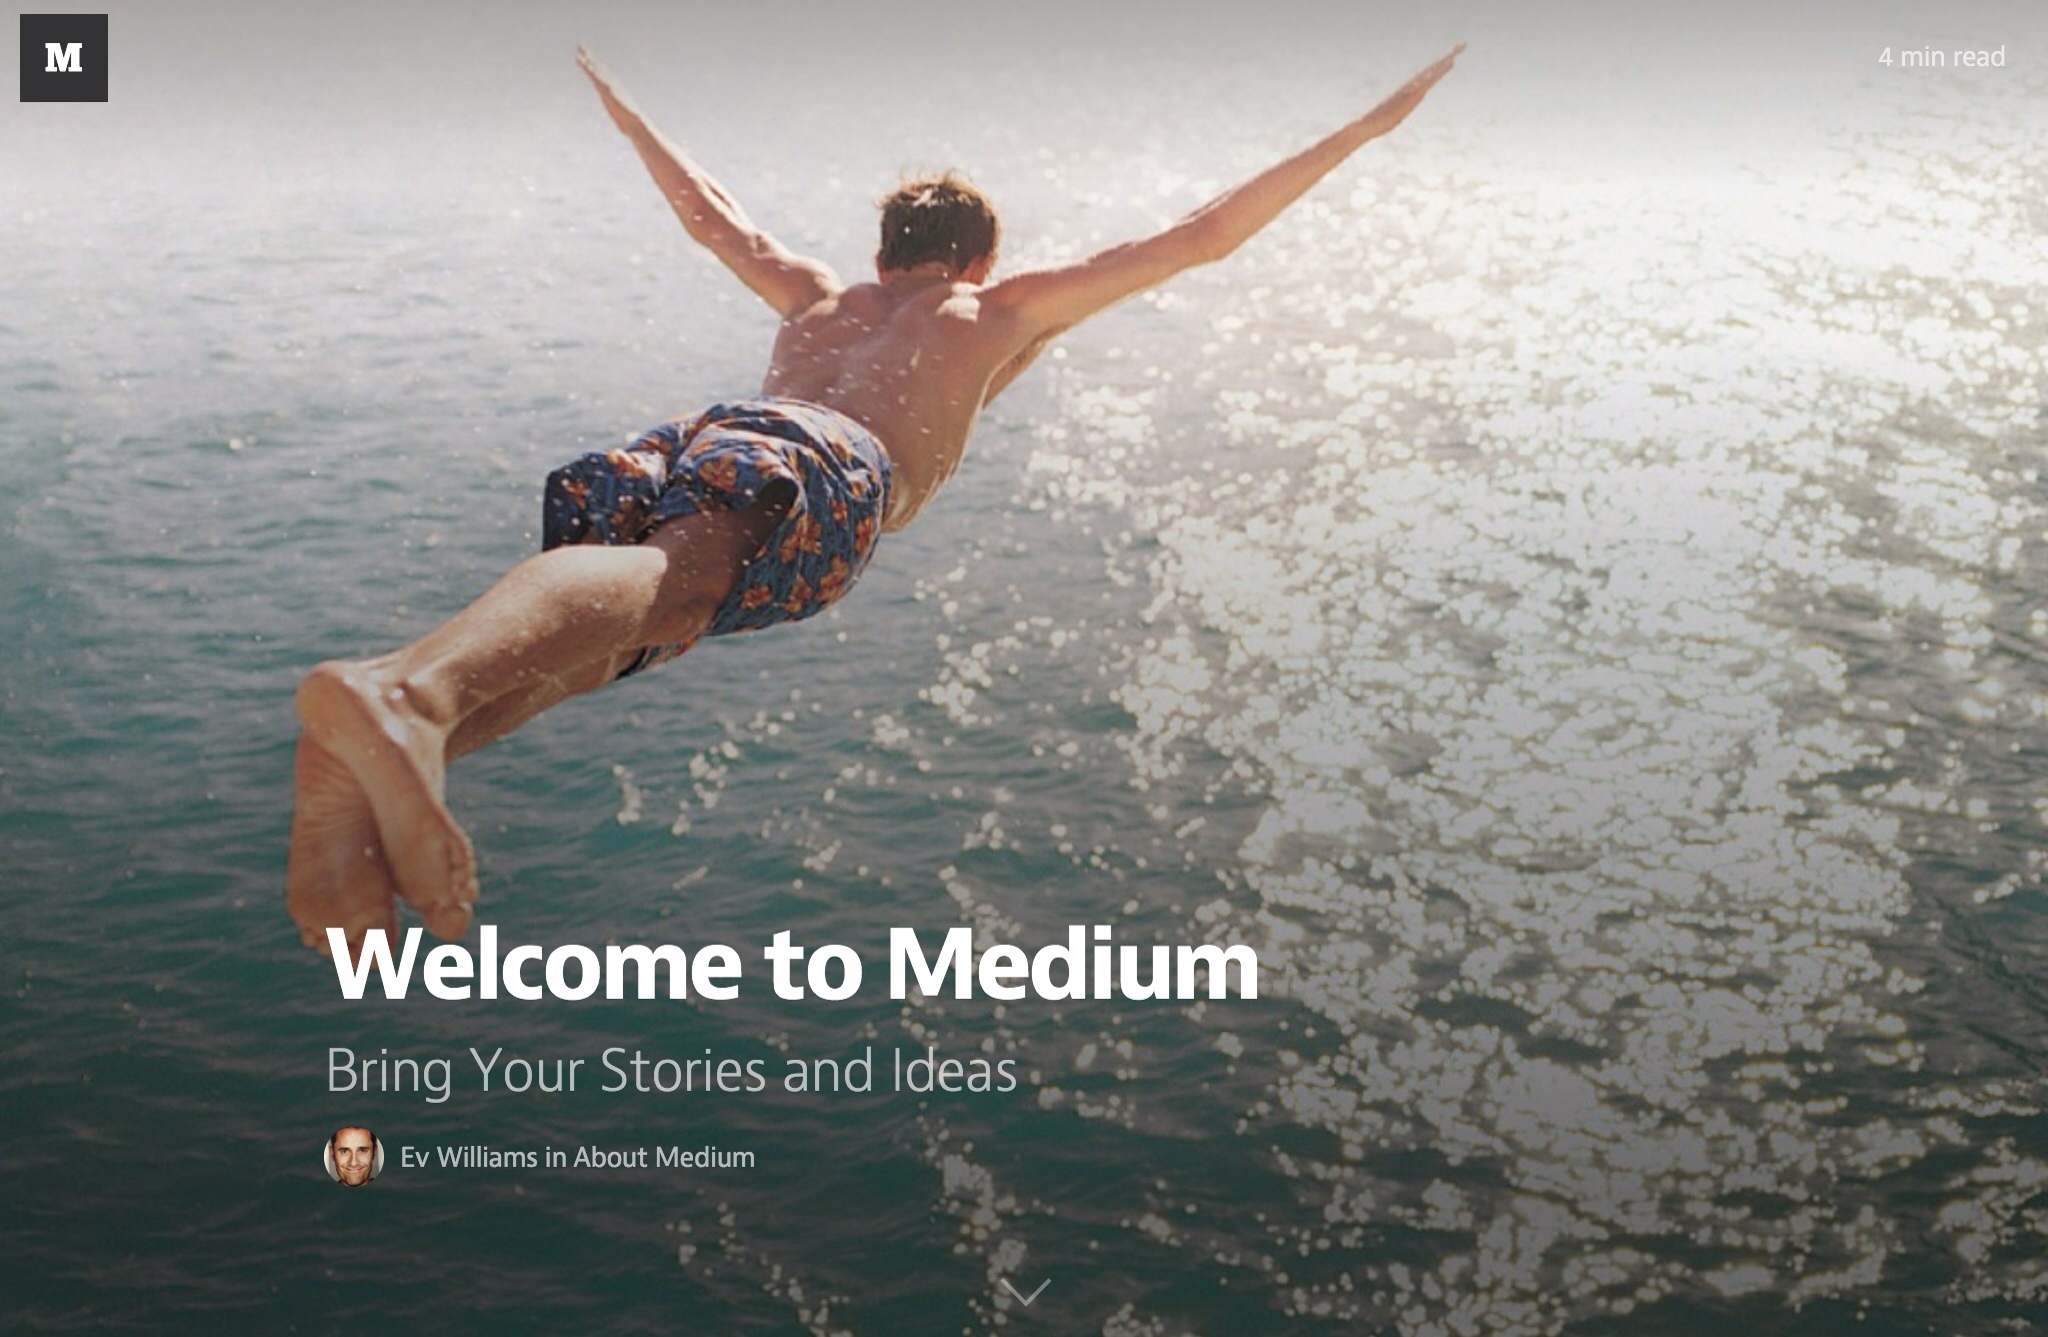 Twitter And Blogger Cofounder Ev Williams' Medium To Launch Official iOS App Next Week